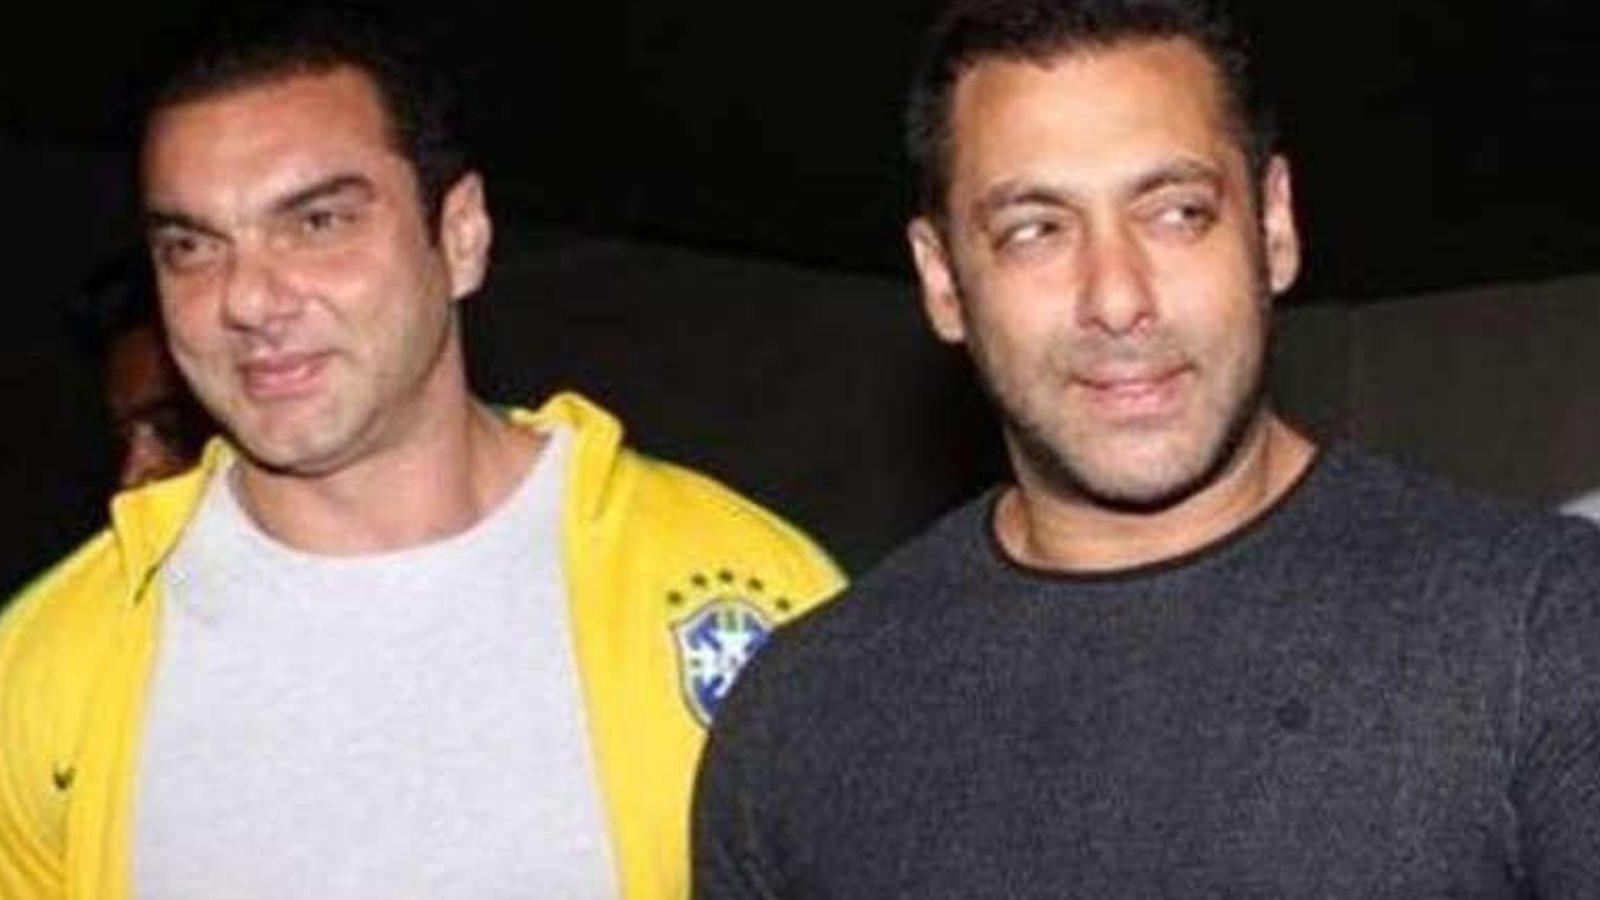 Salman Khan gives brother Sohail Khan a green light for 'Sher Khan'